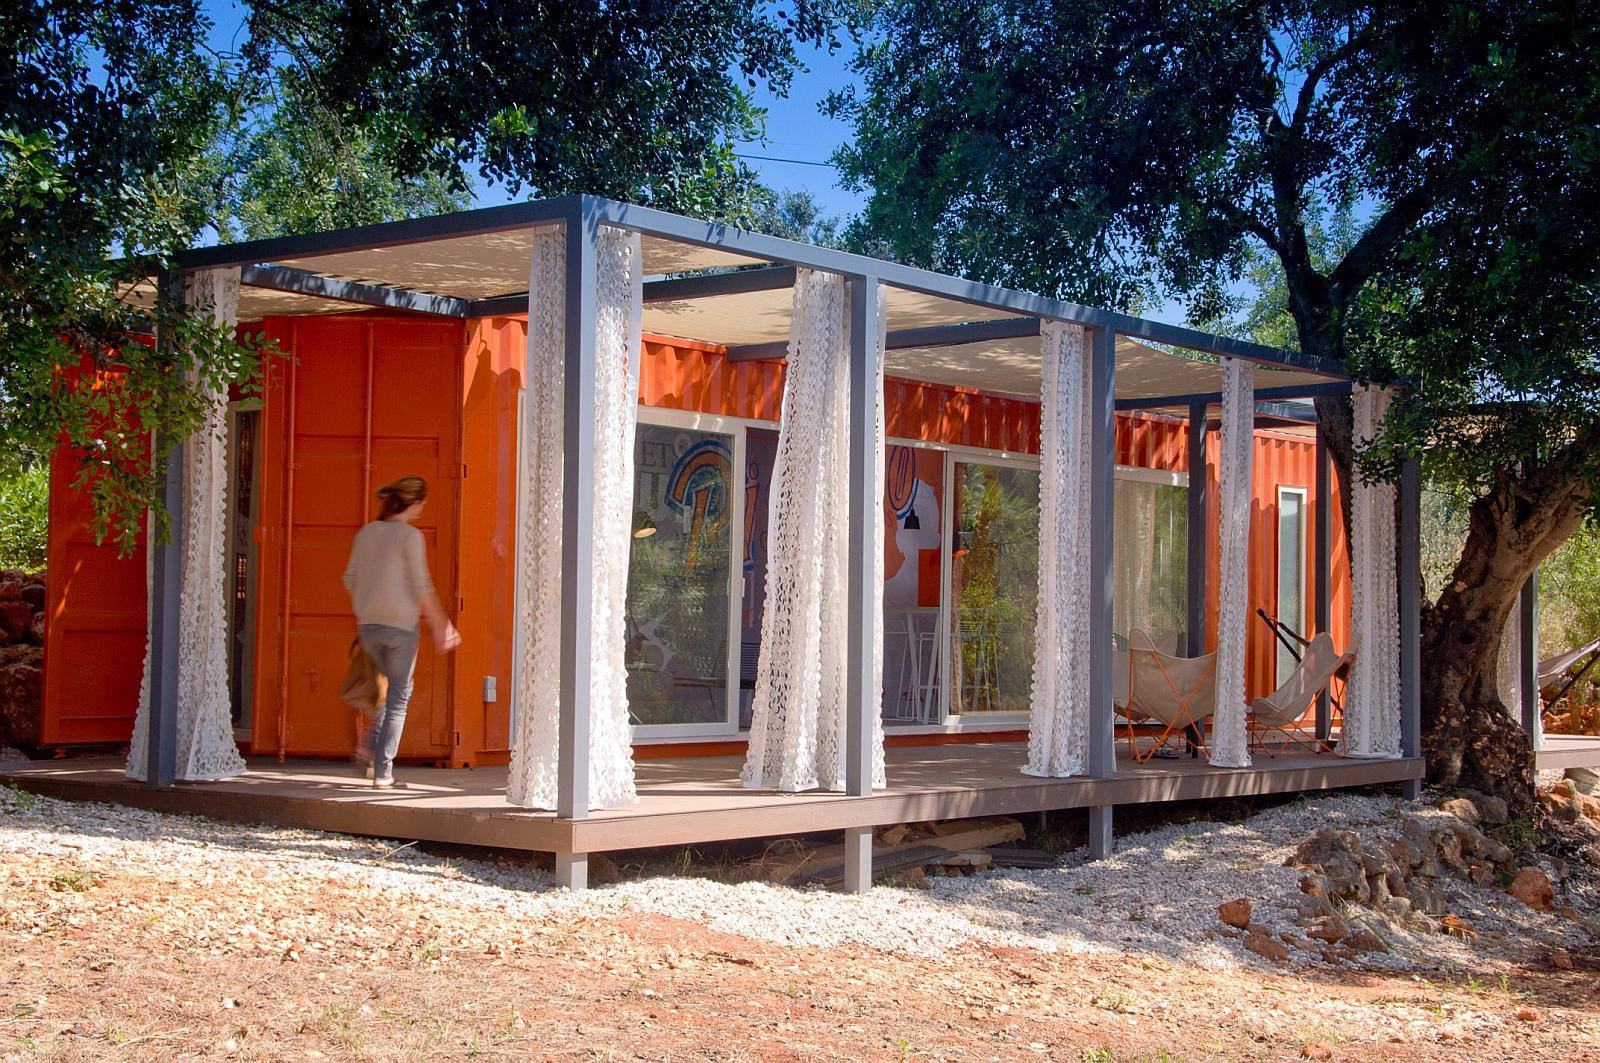 Open air living in a portuguese container home